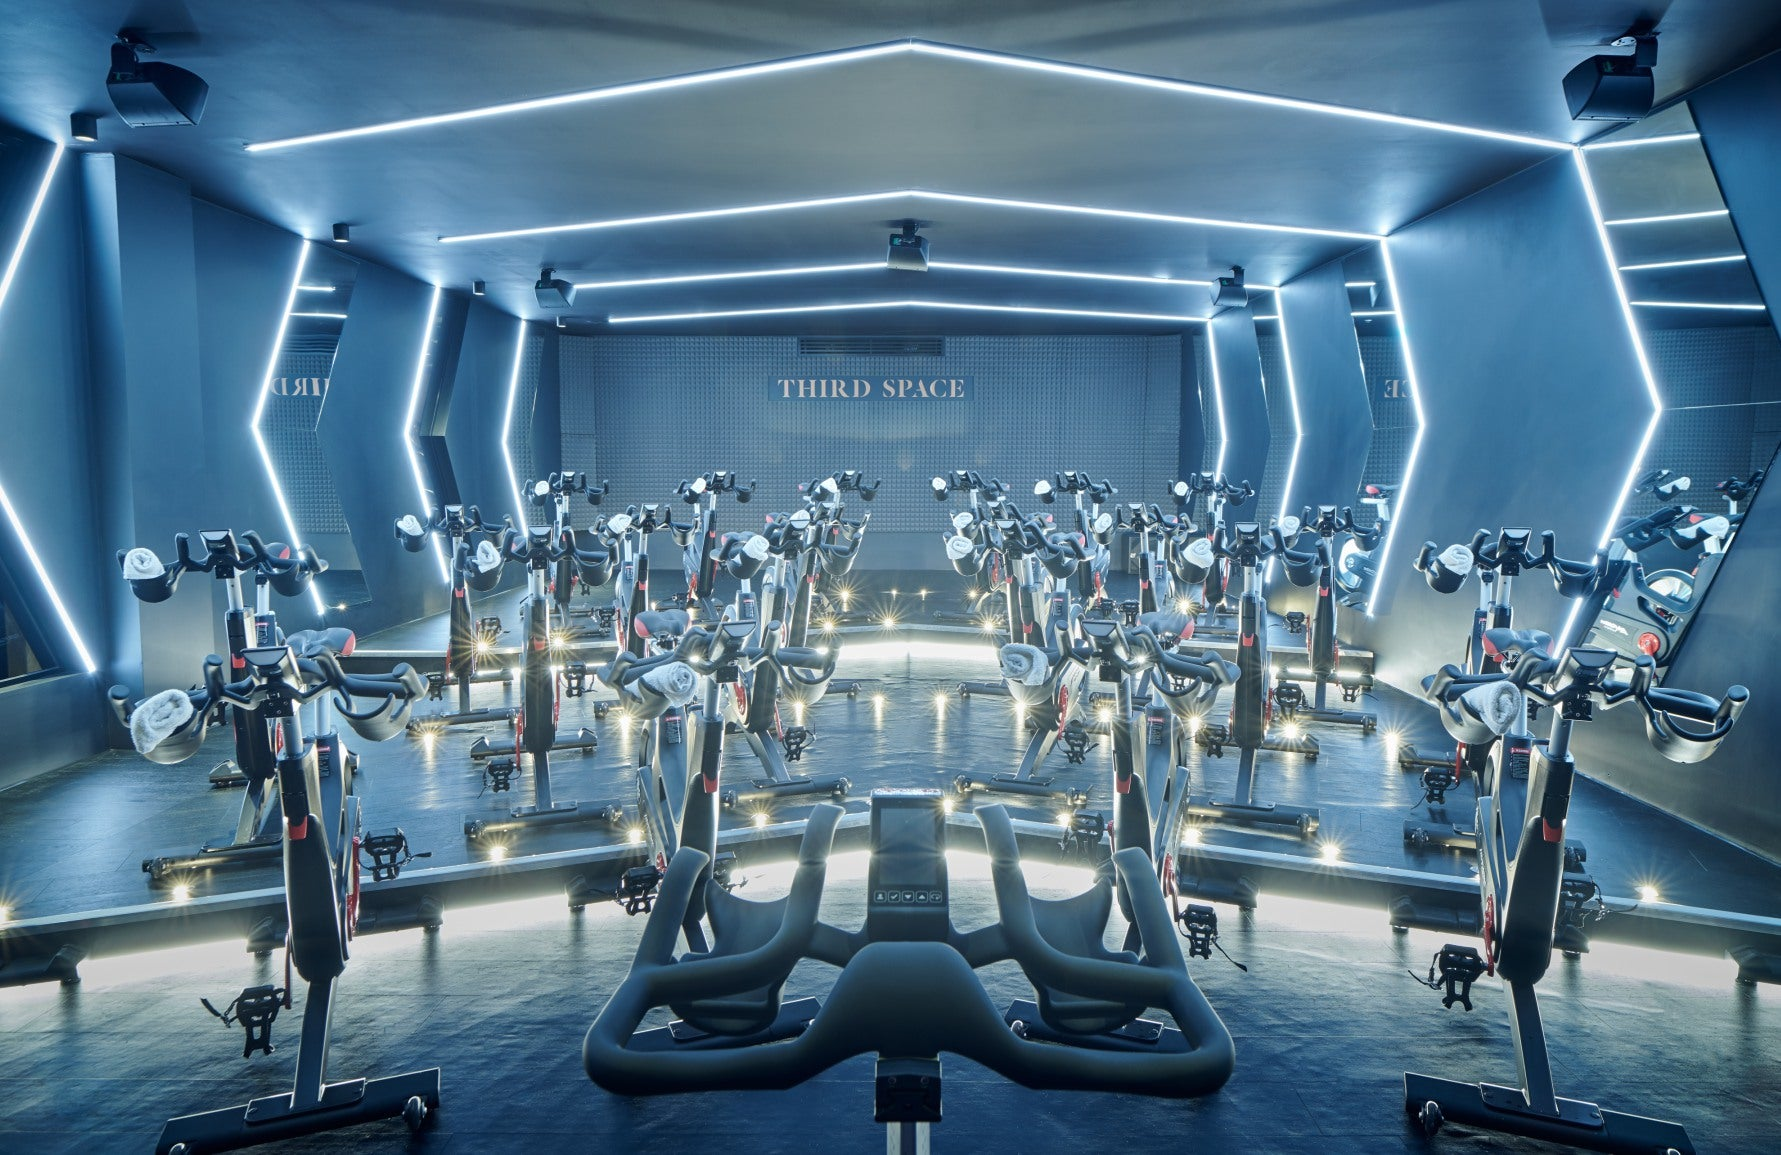 Best Gyms in London Gyms | Third Space |  Read more in The Luxurist at LuxDeco.com